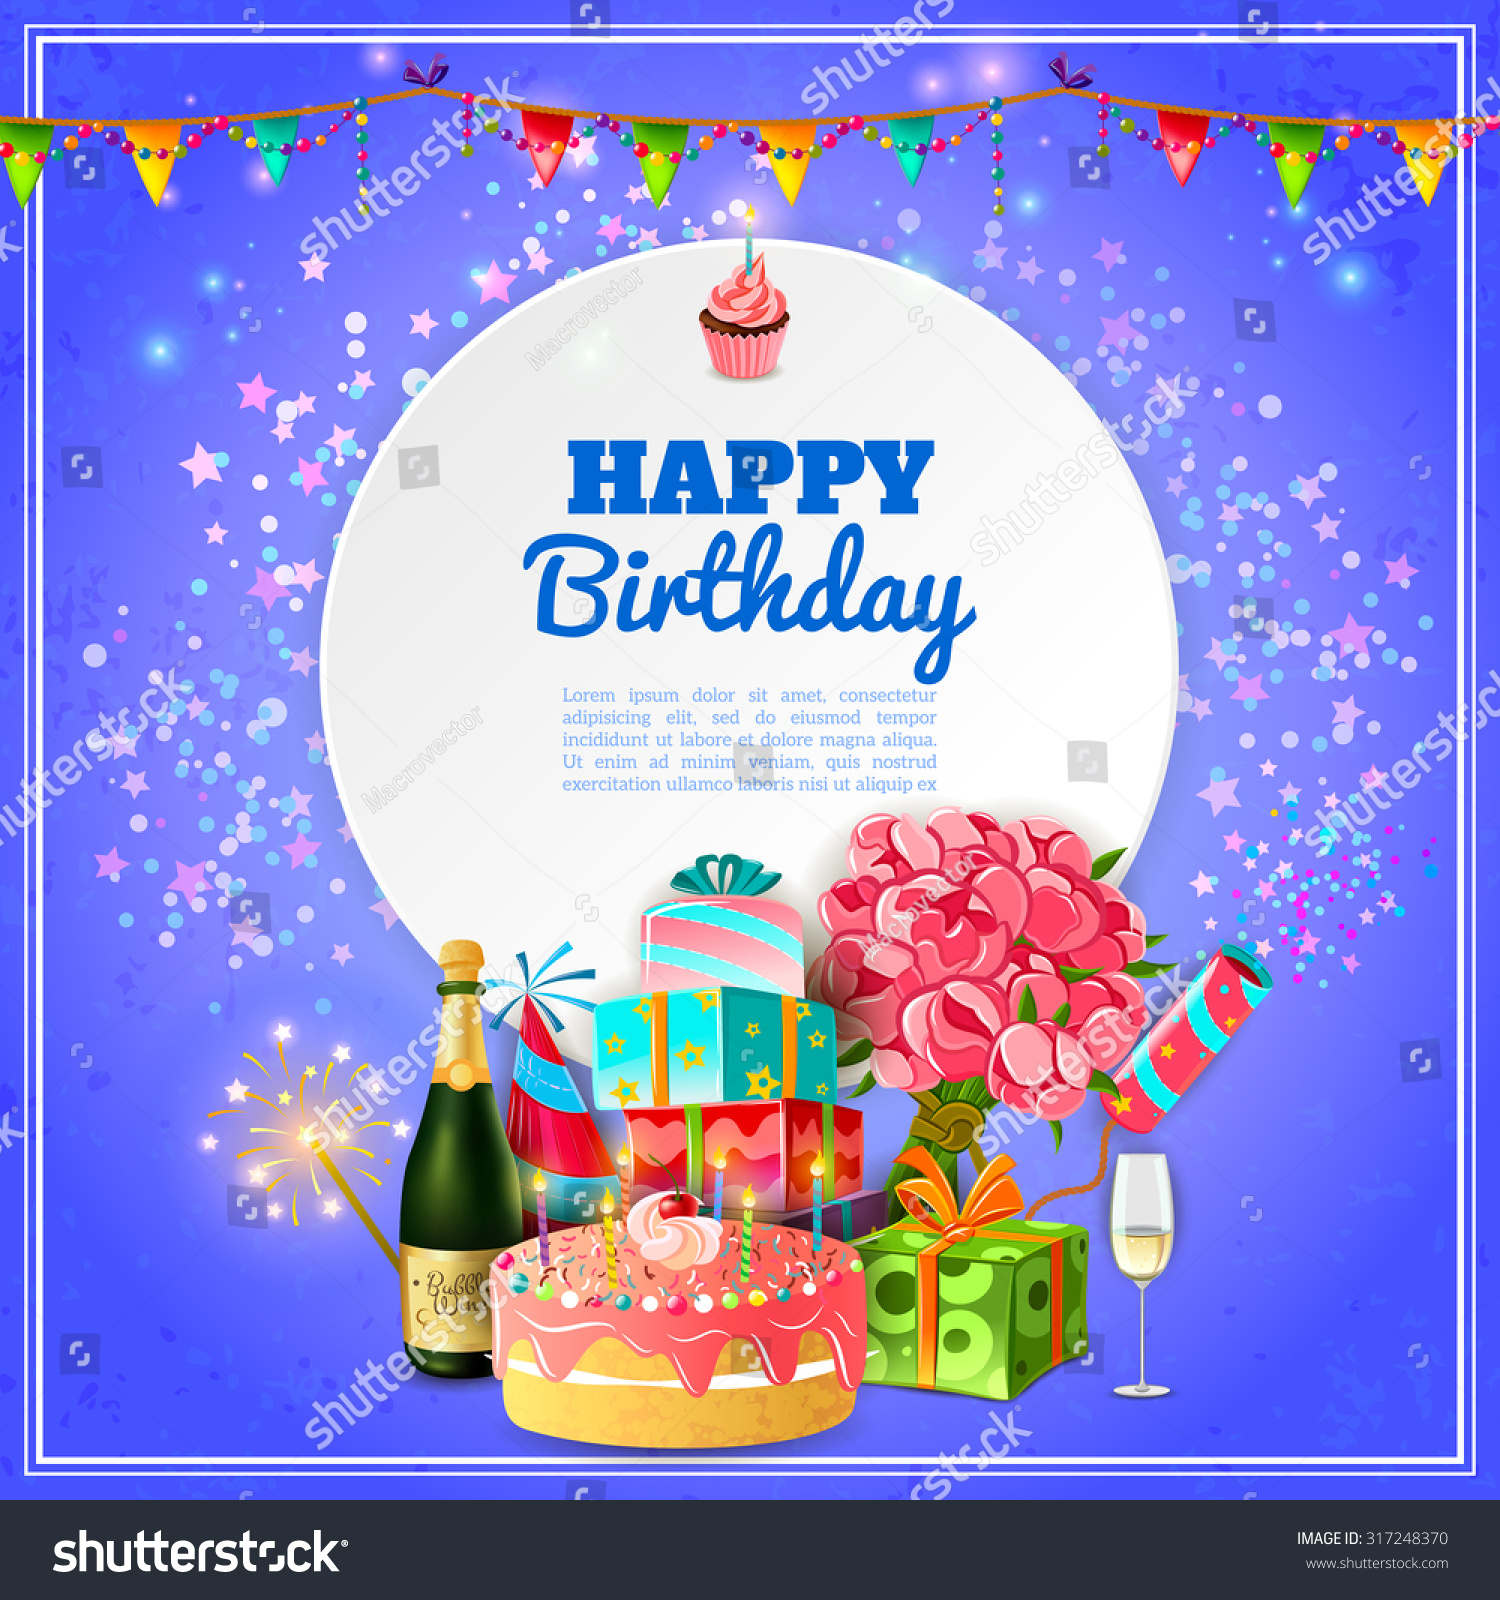 Happy Birthday Party Template For Background Or Invitation